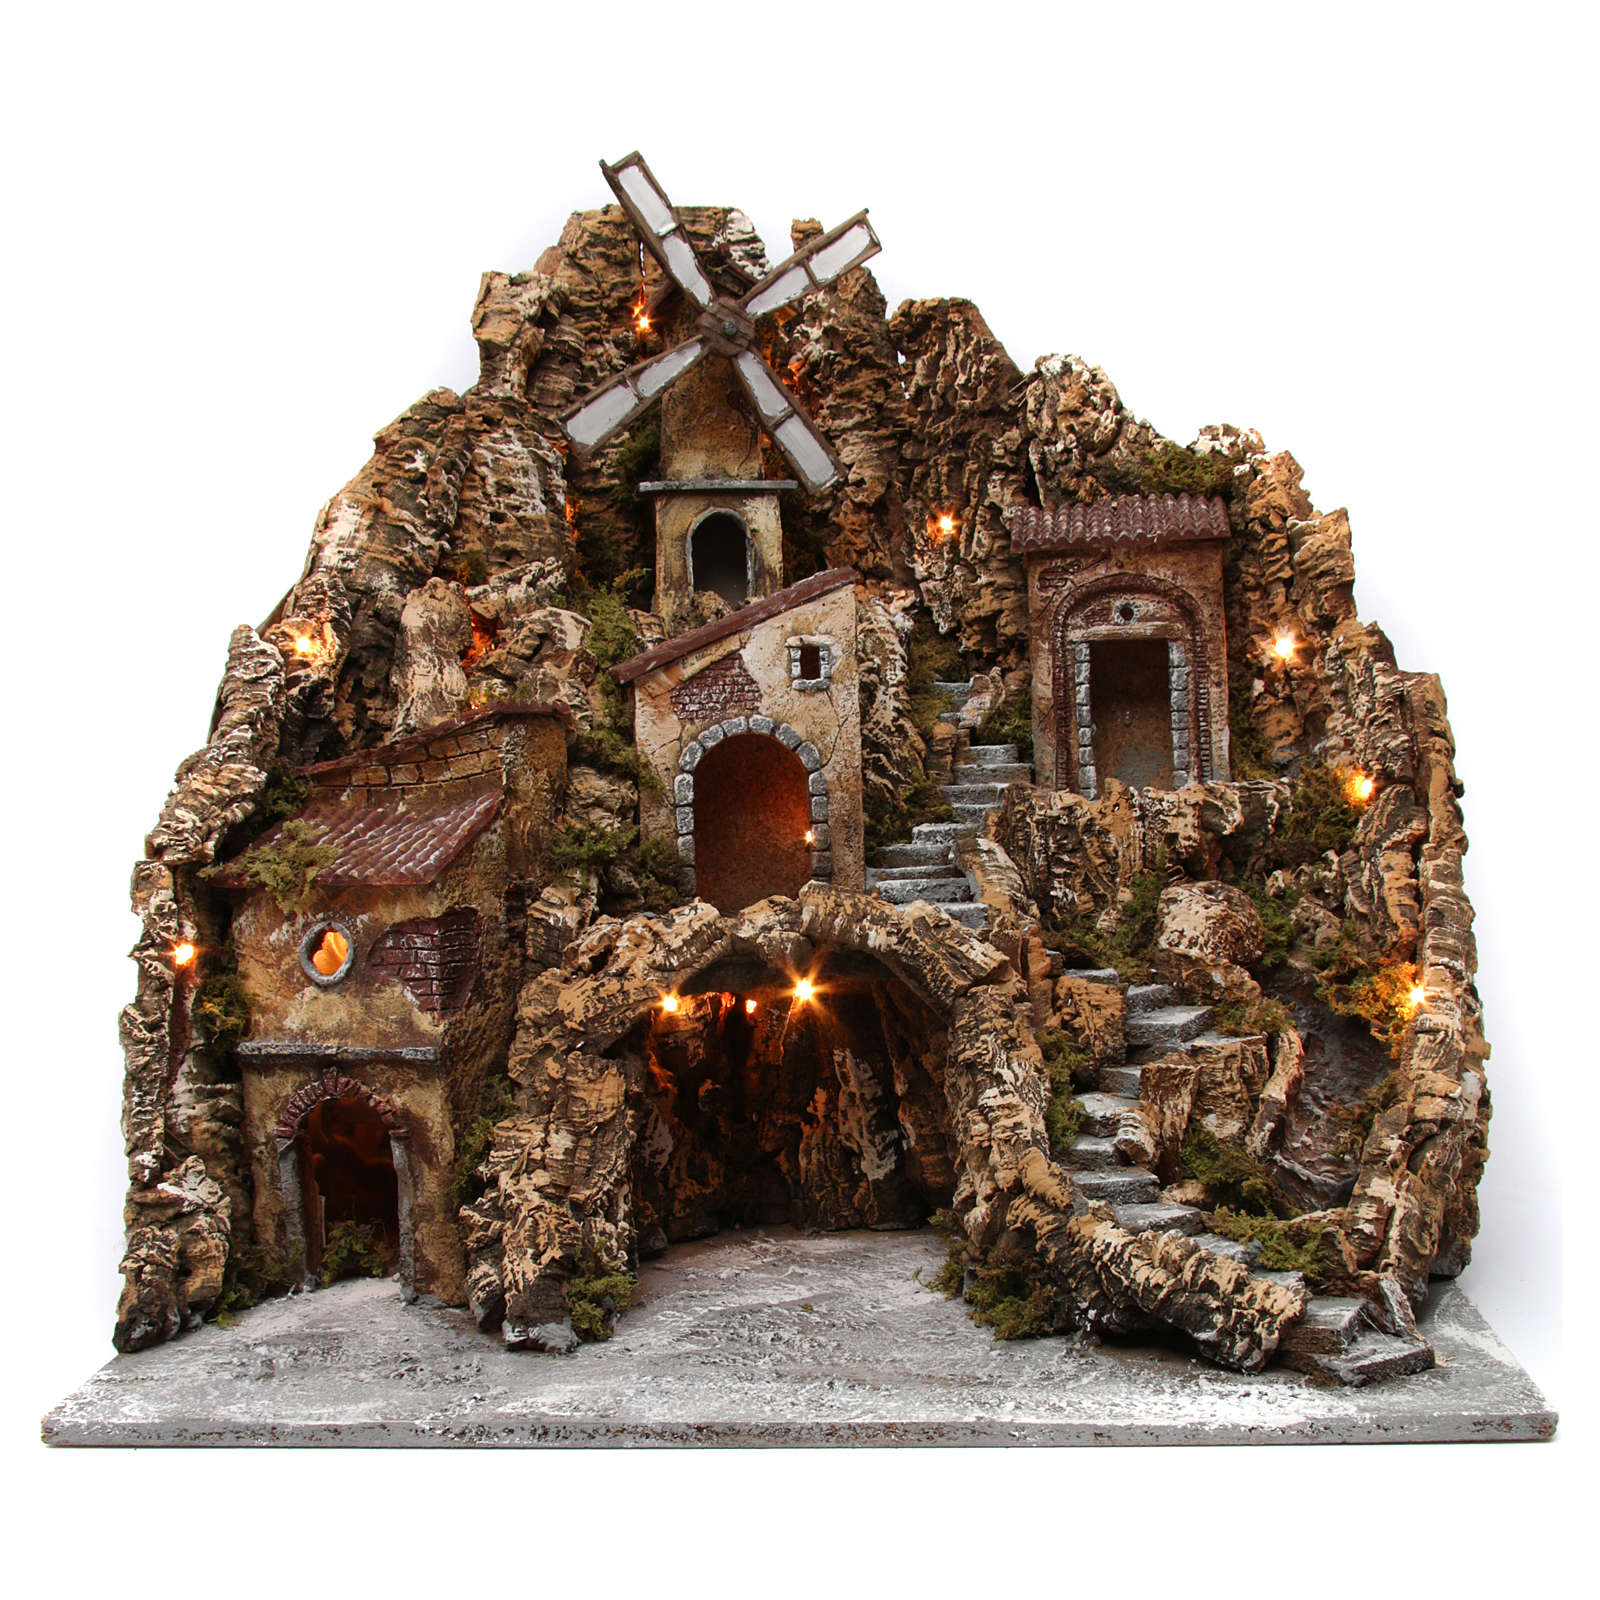 Nativity scene setting with lights, water mill and stream 60x60x70 cm, Neapolitan style 4